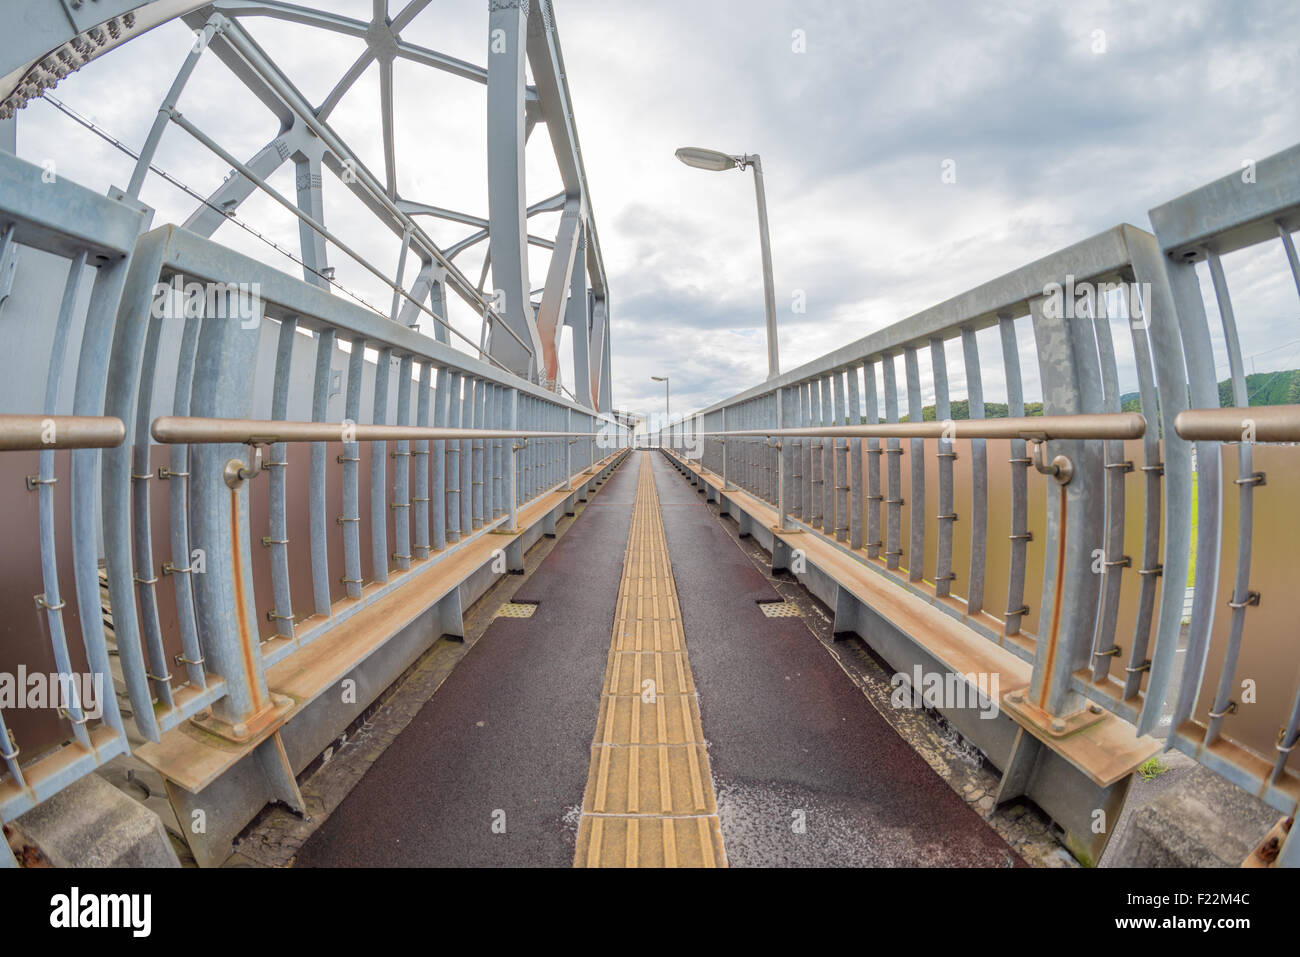 A fisheye shot of a ramp with hand rails on the sides leading to the center of the image. - Stock Image